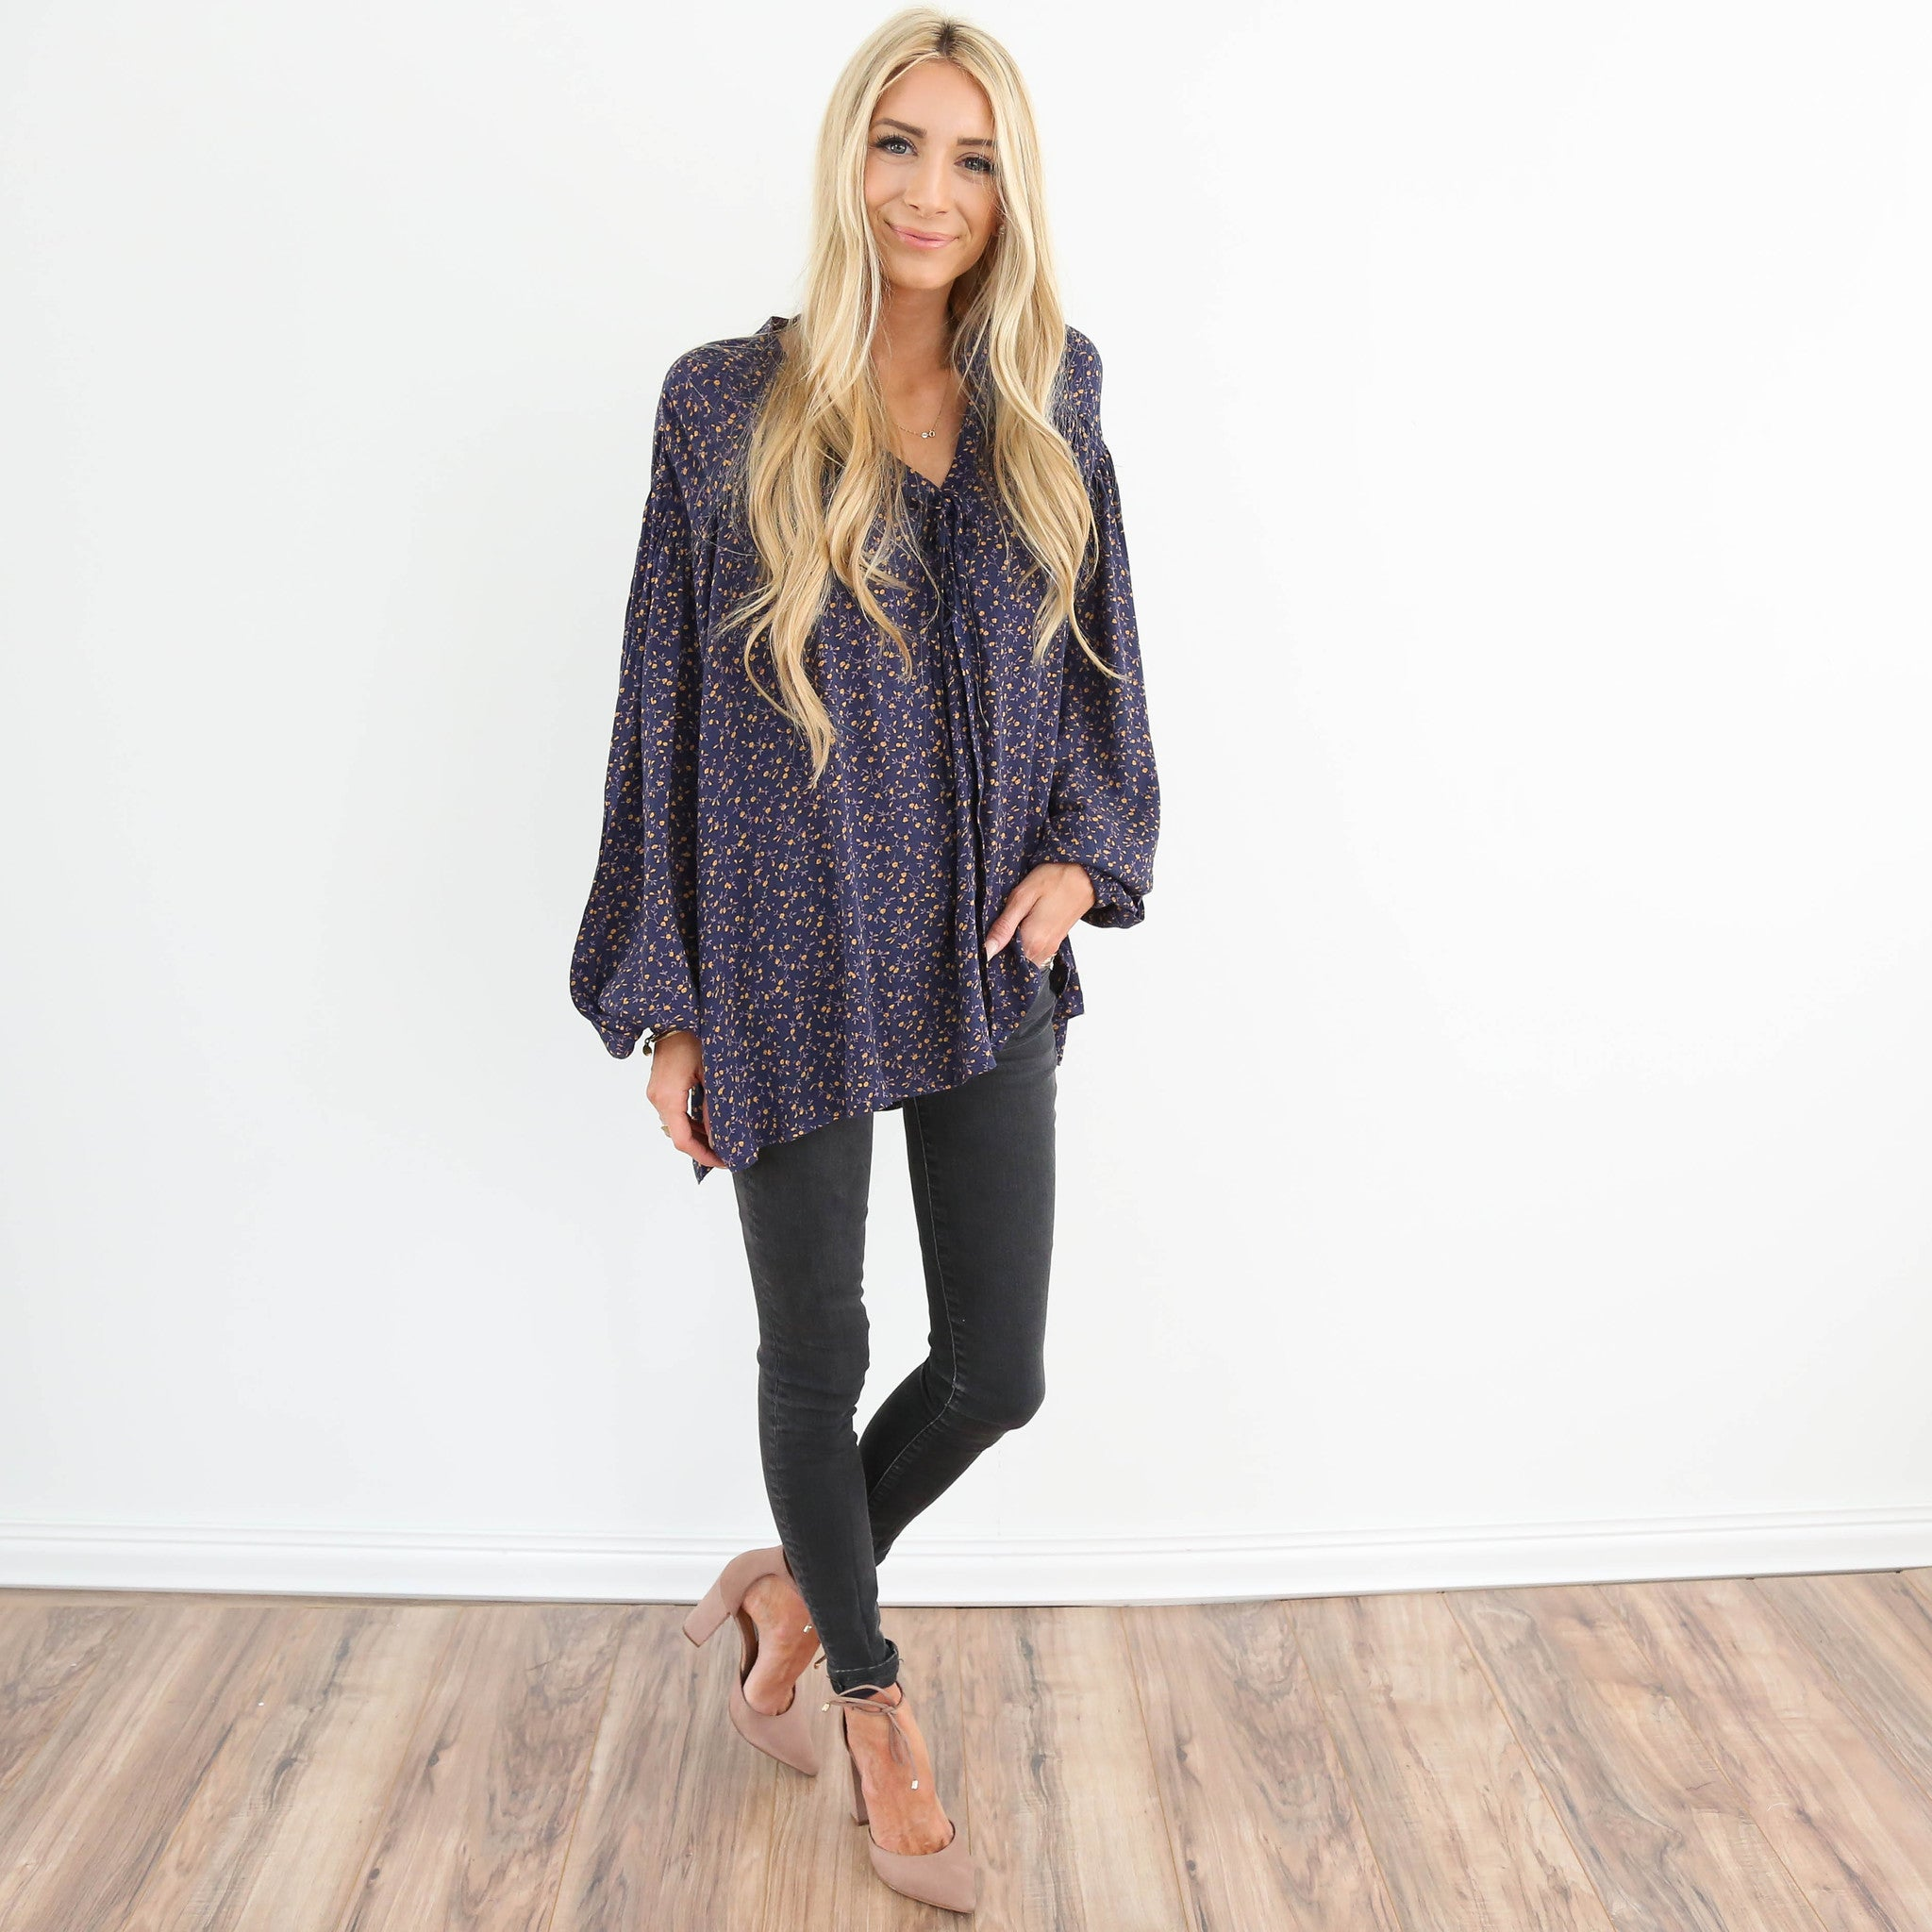 Printed Navy Top